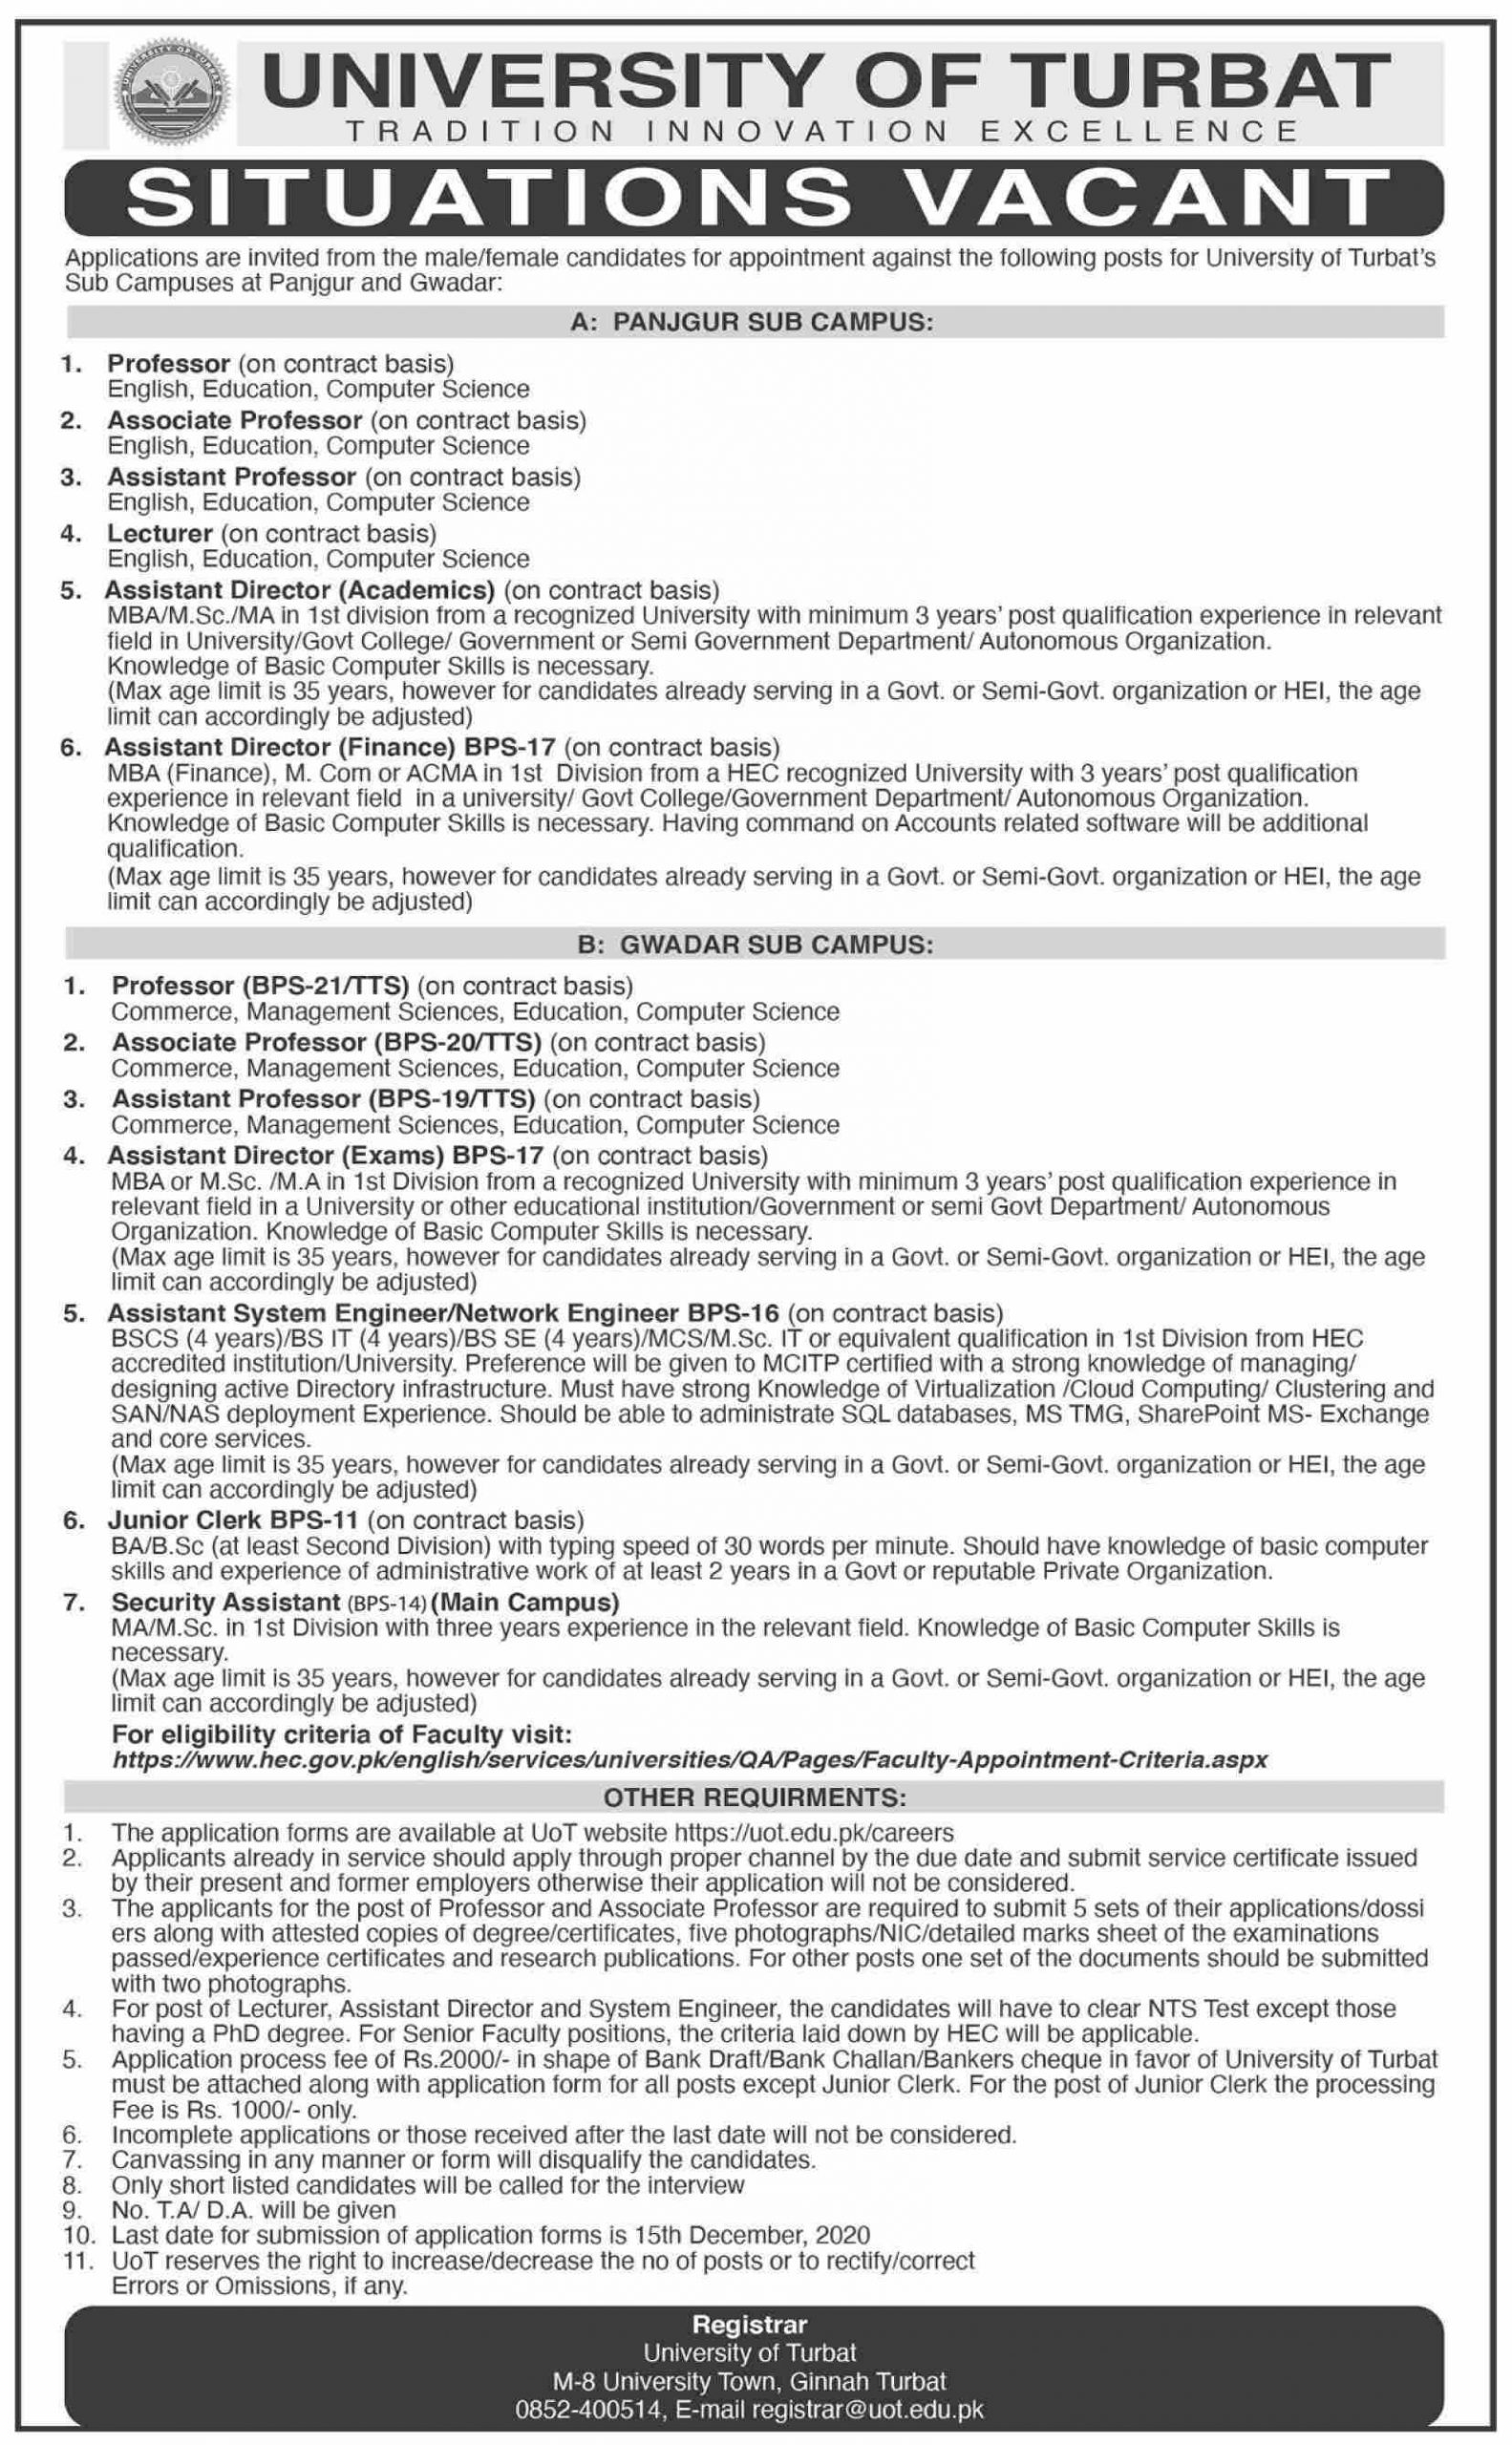 University Of Turbat Jobs Nov 2020